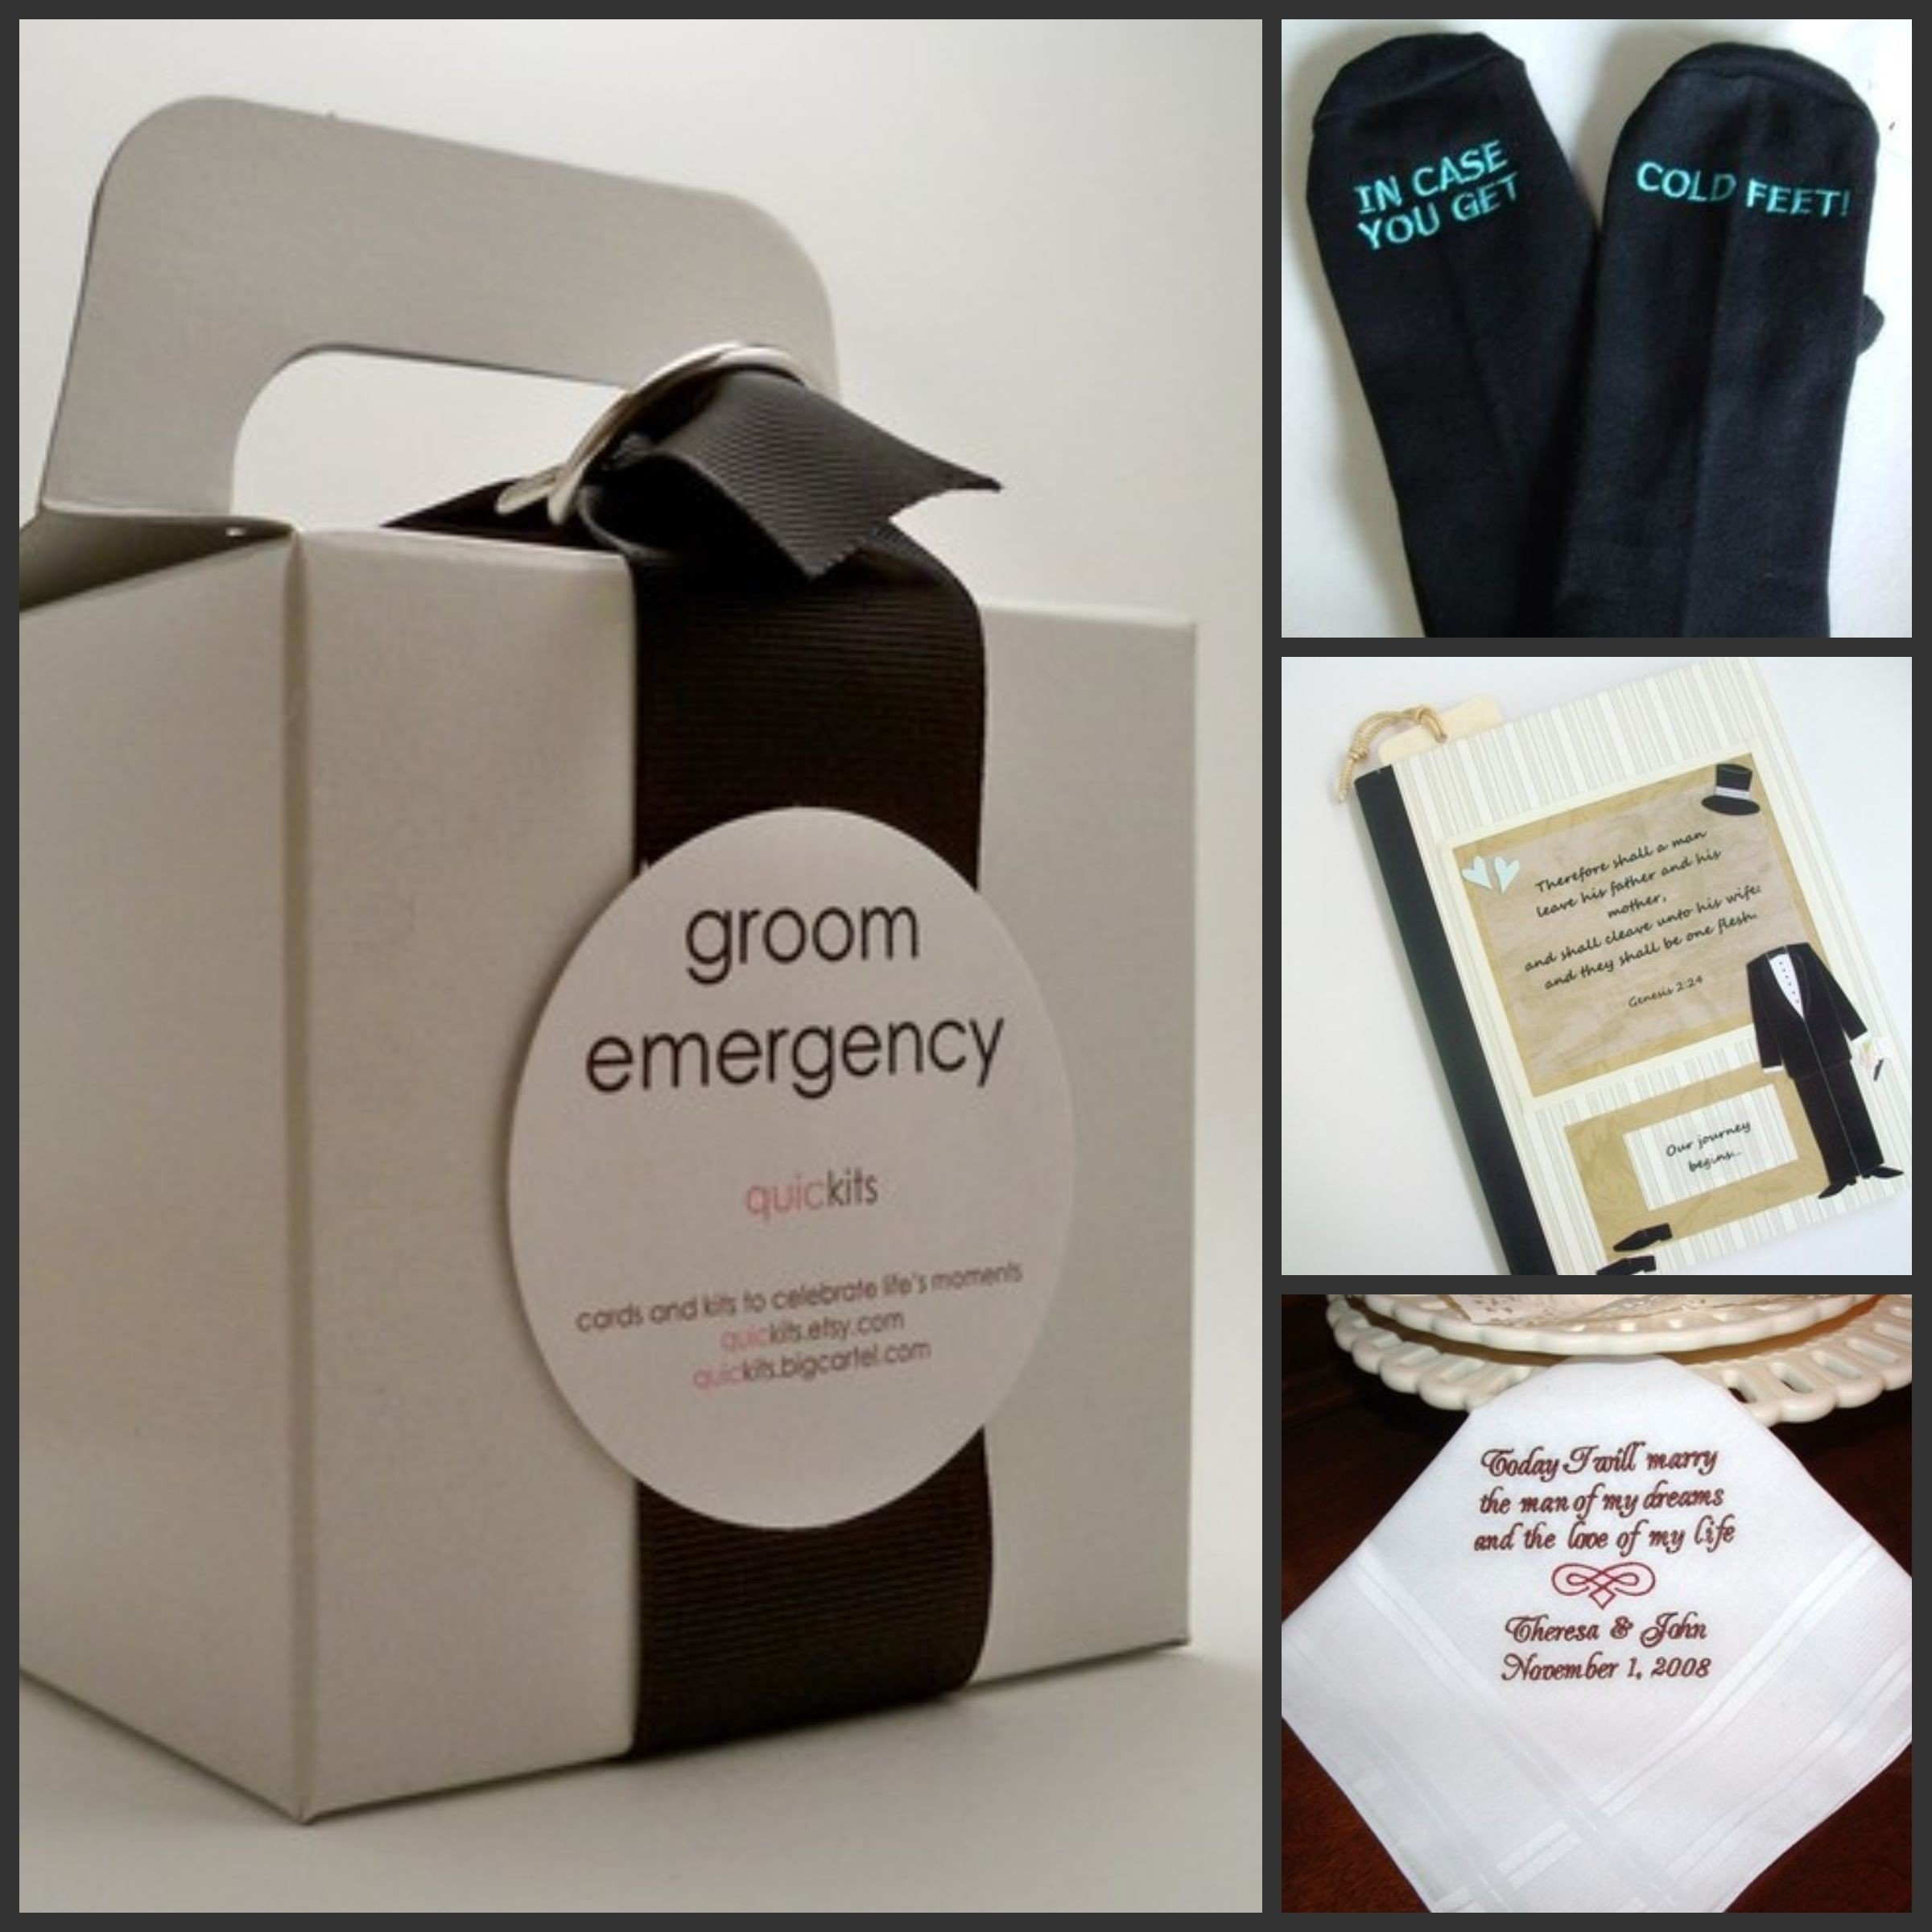 10 Beautiful Wedding Gift Ideas For Groom wedding gifts id pictures in gallery groom to bride wedding gift 2021